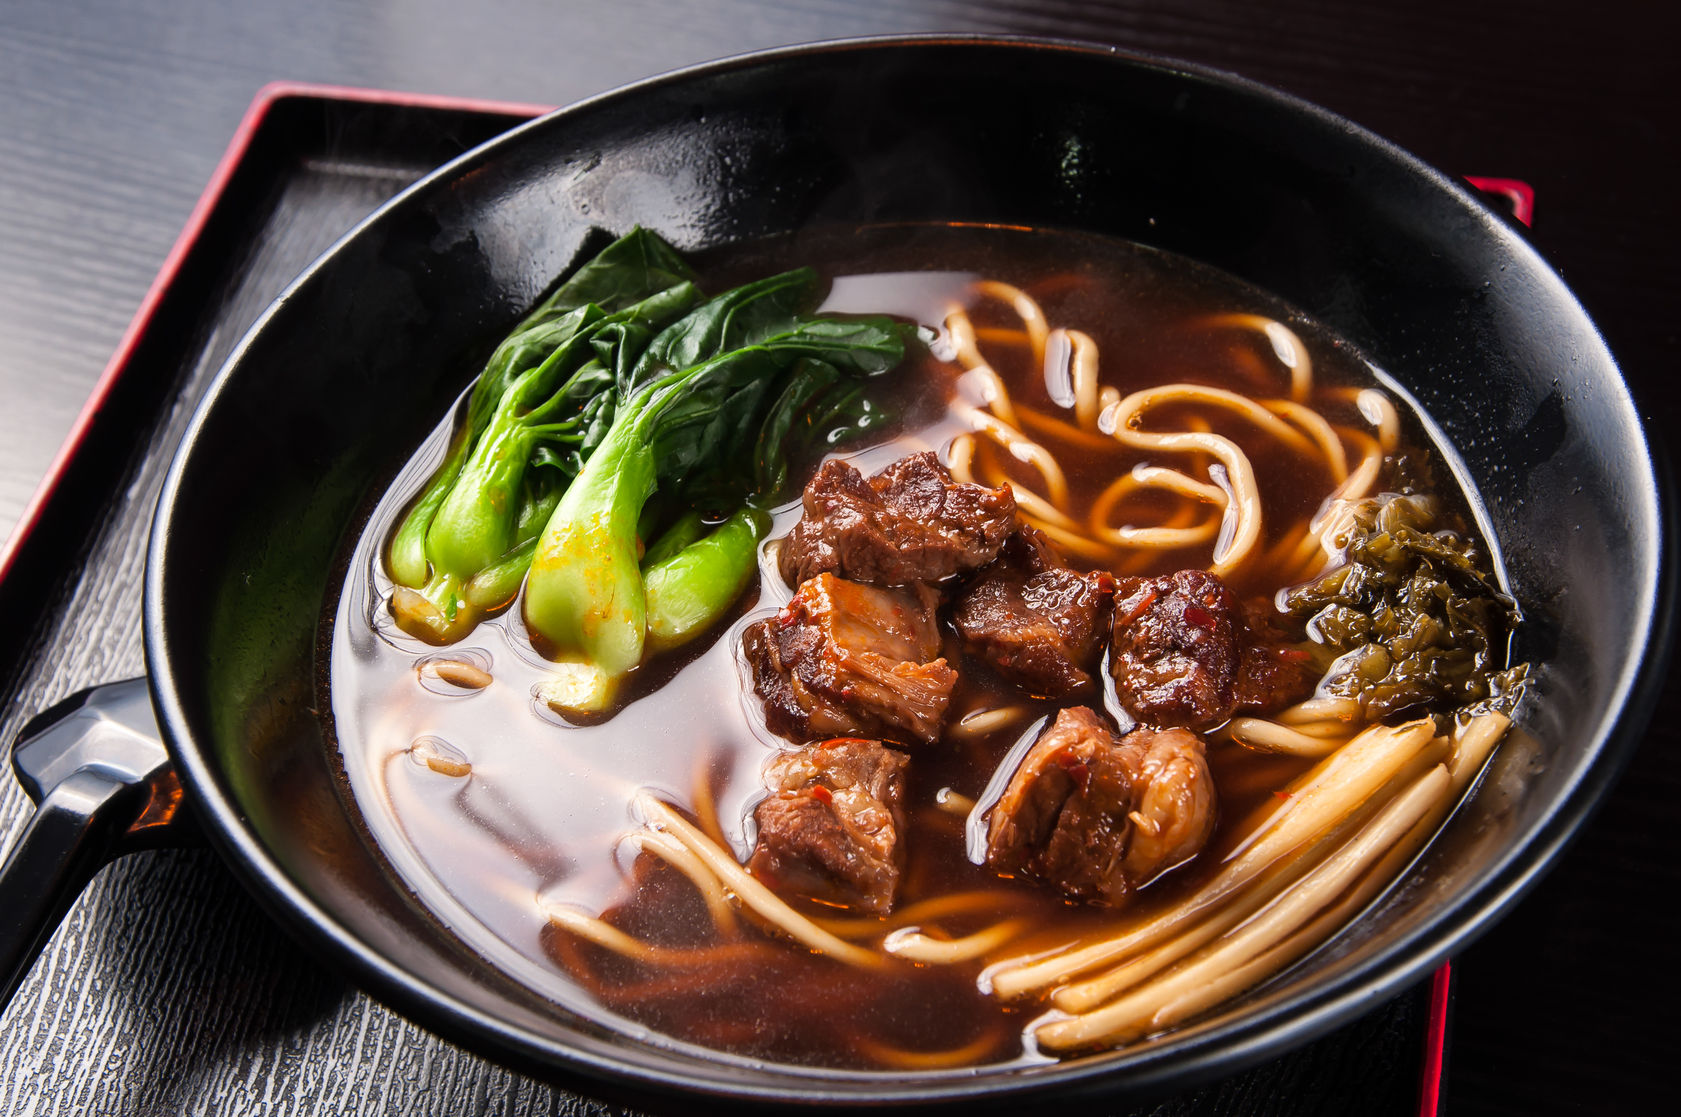 https://cdn.techinasia.com/wp-content/uploads/2016/10/beef-noodles.jpg